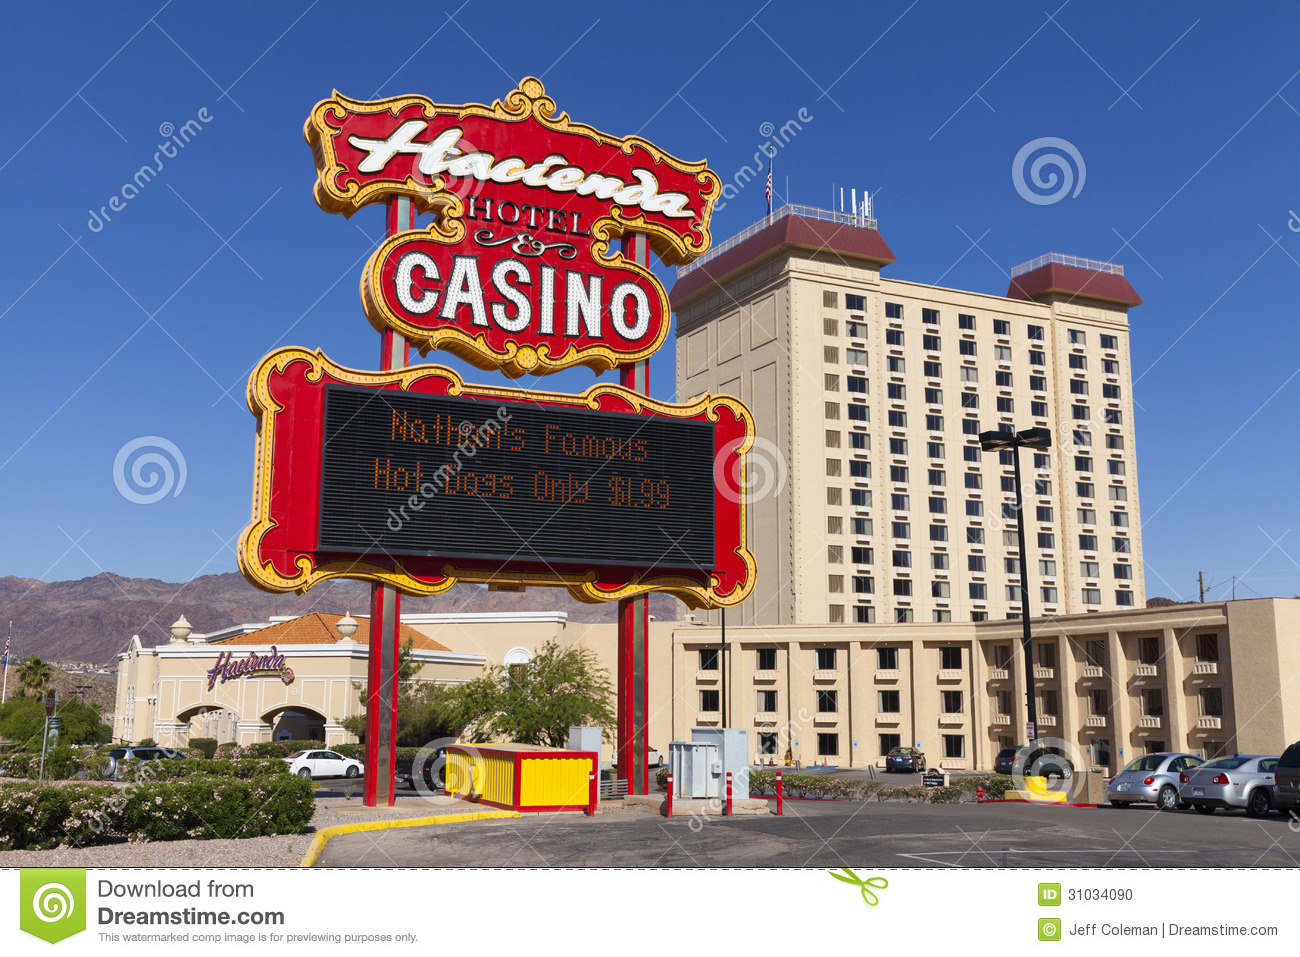 Haceinda casino nv online gambling and